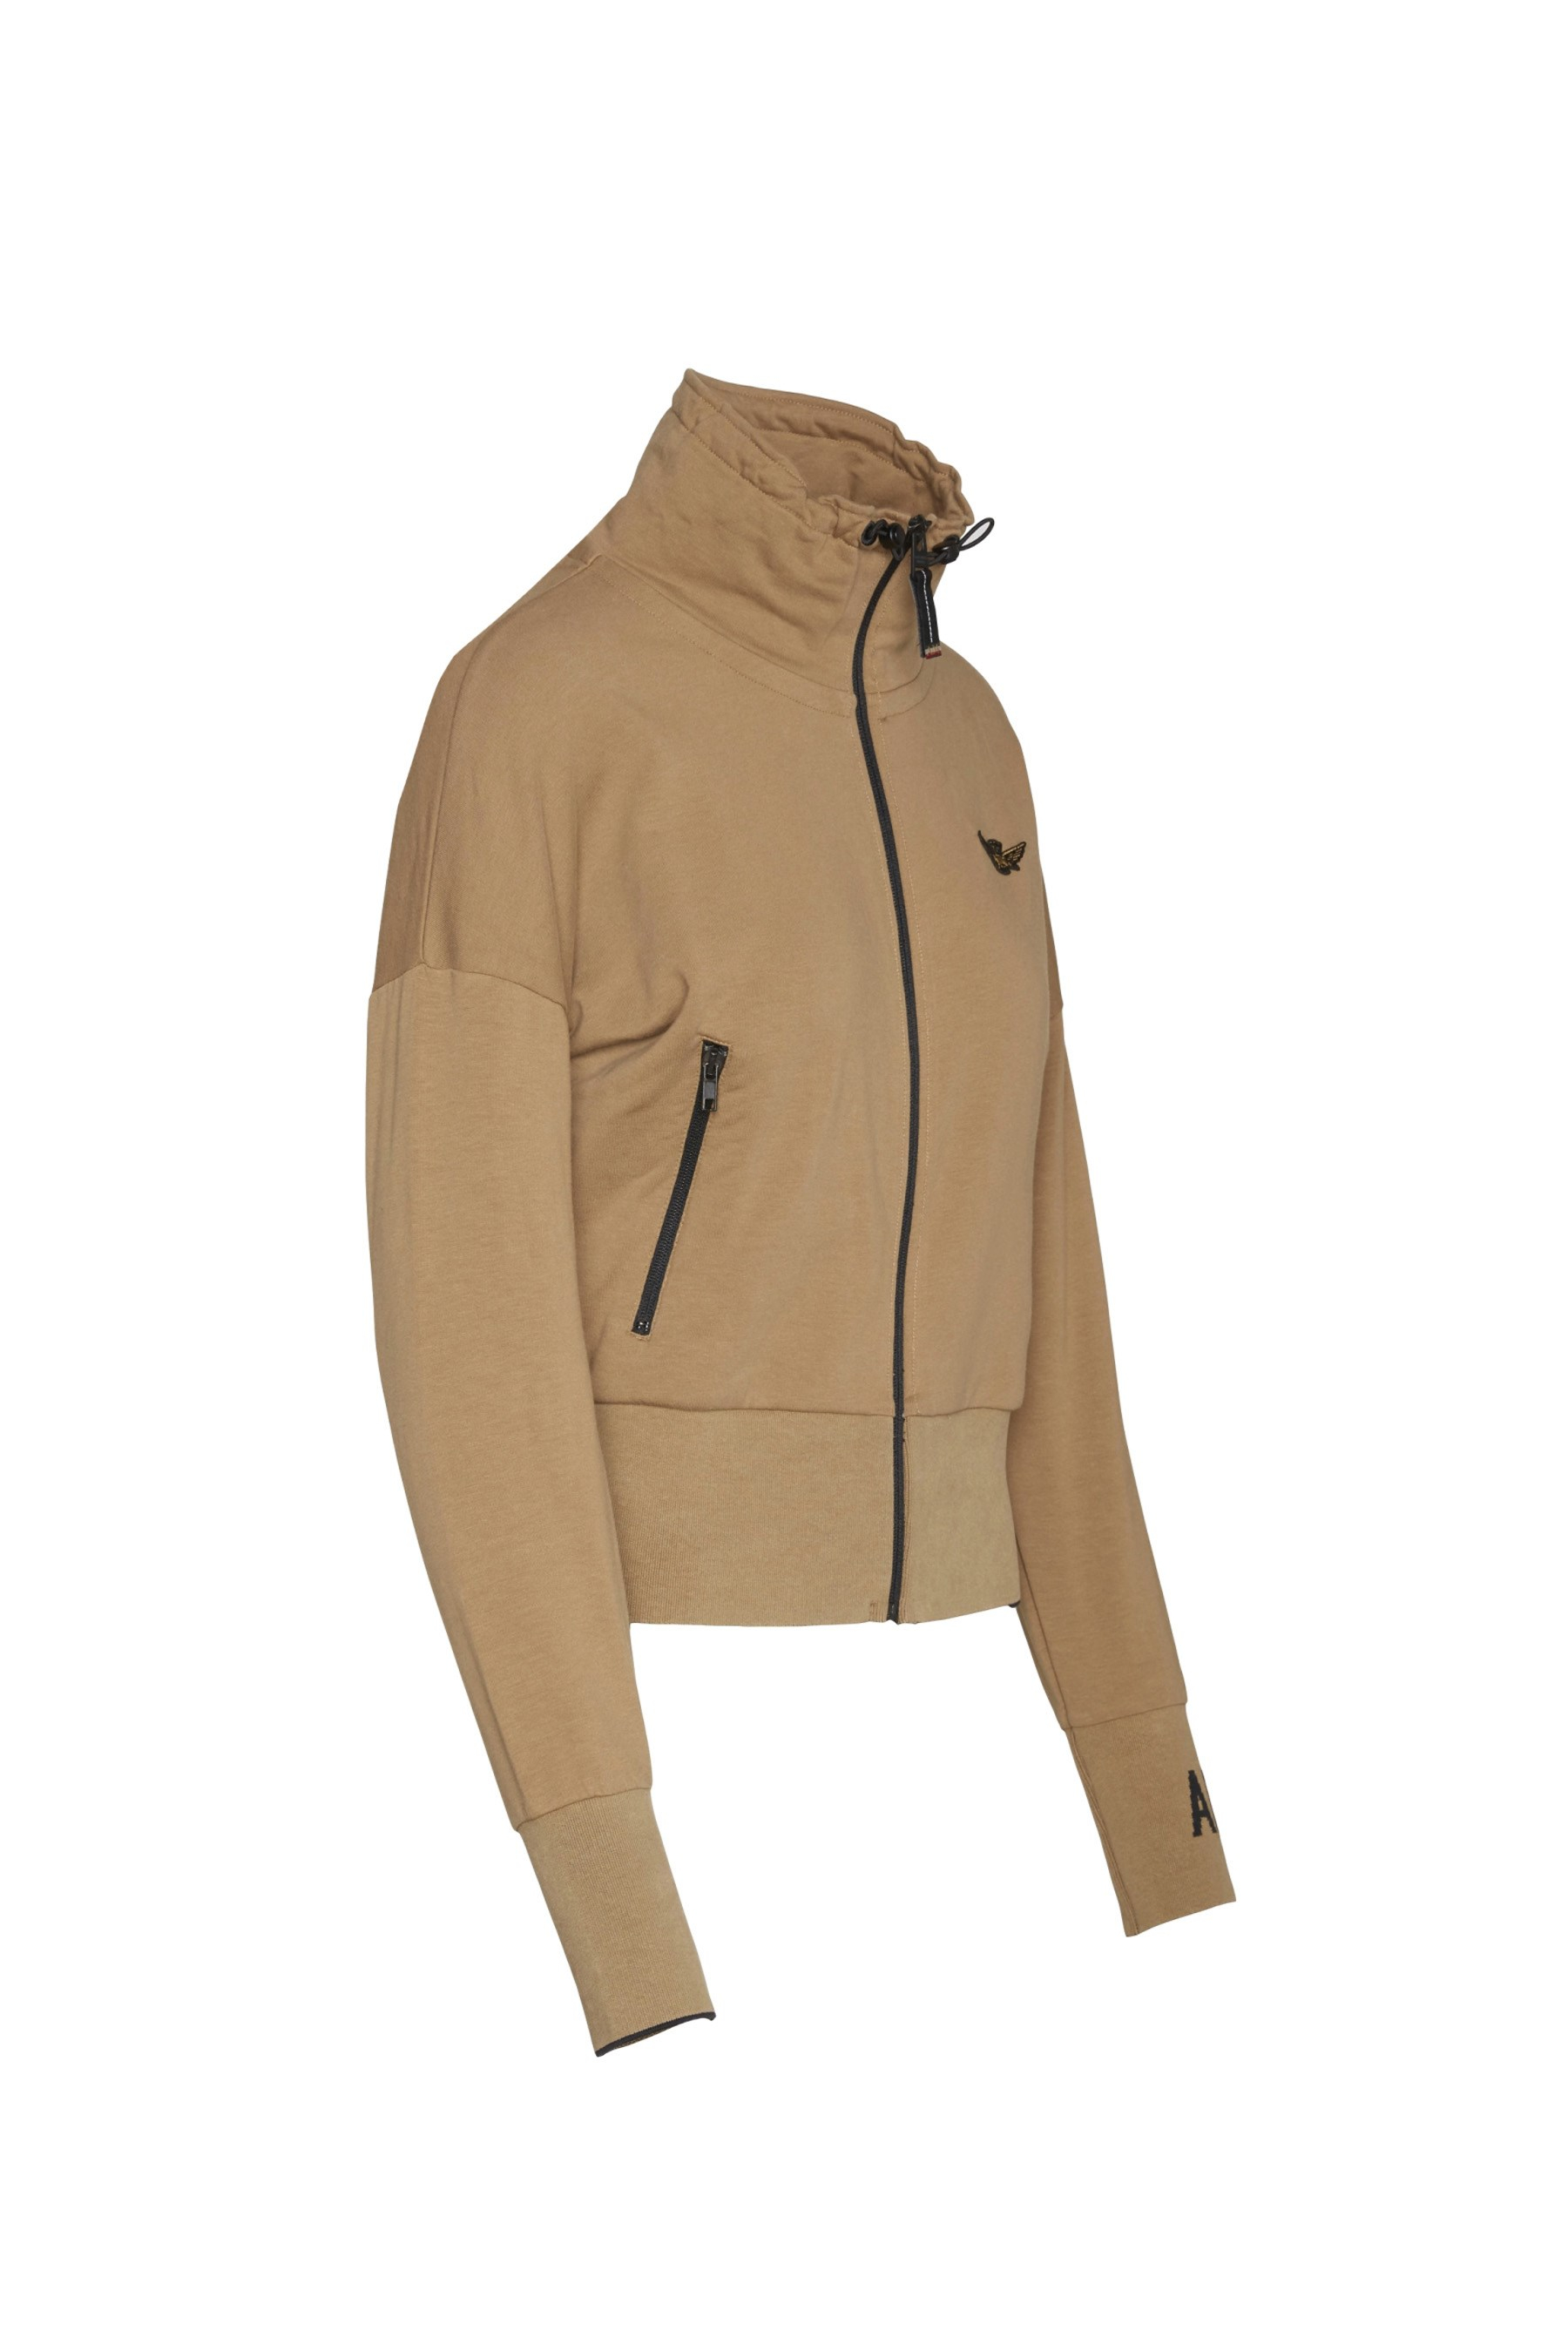 FE1560 - FELPA FULL ZIP 3